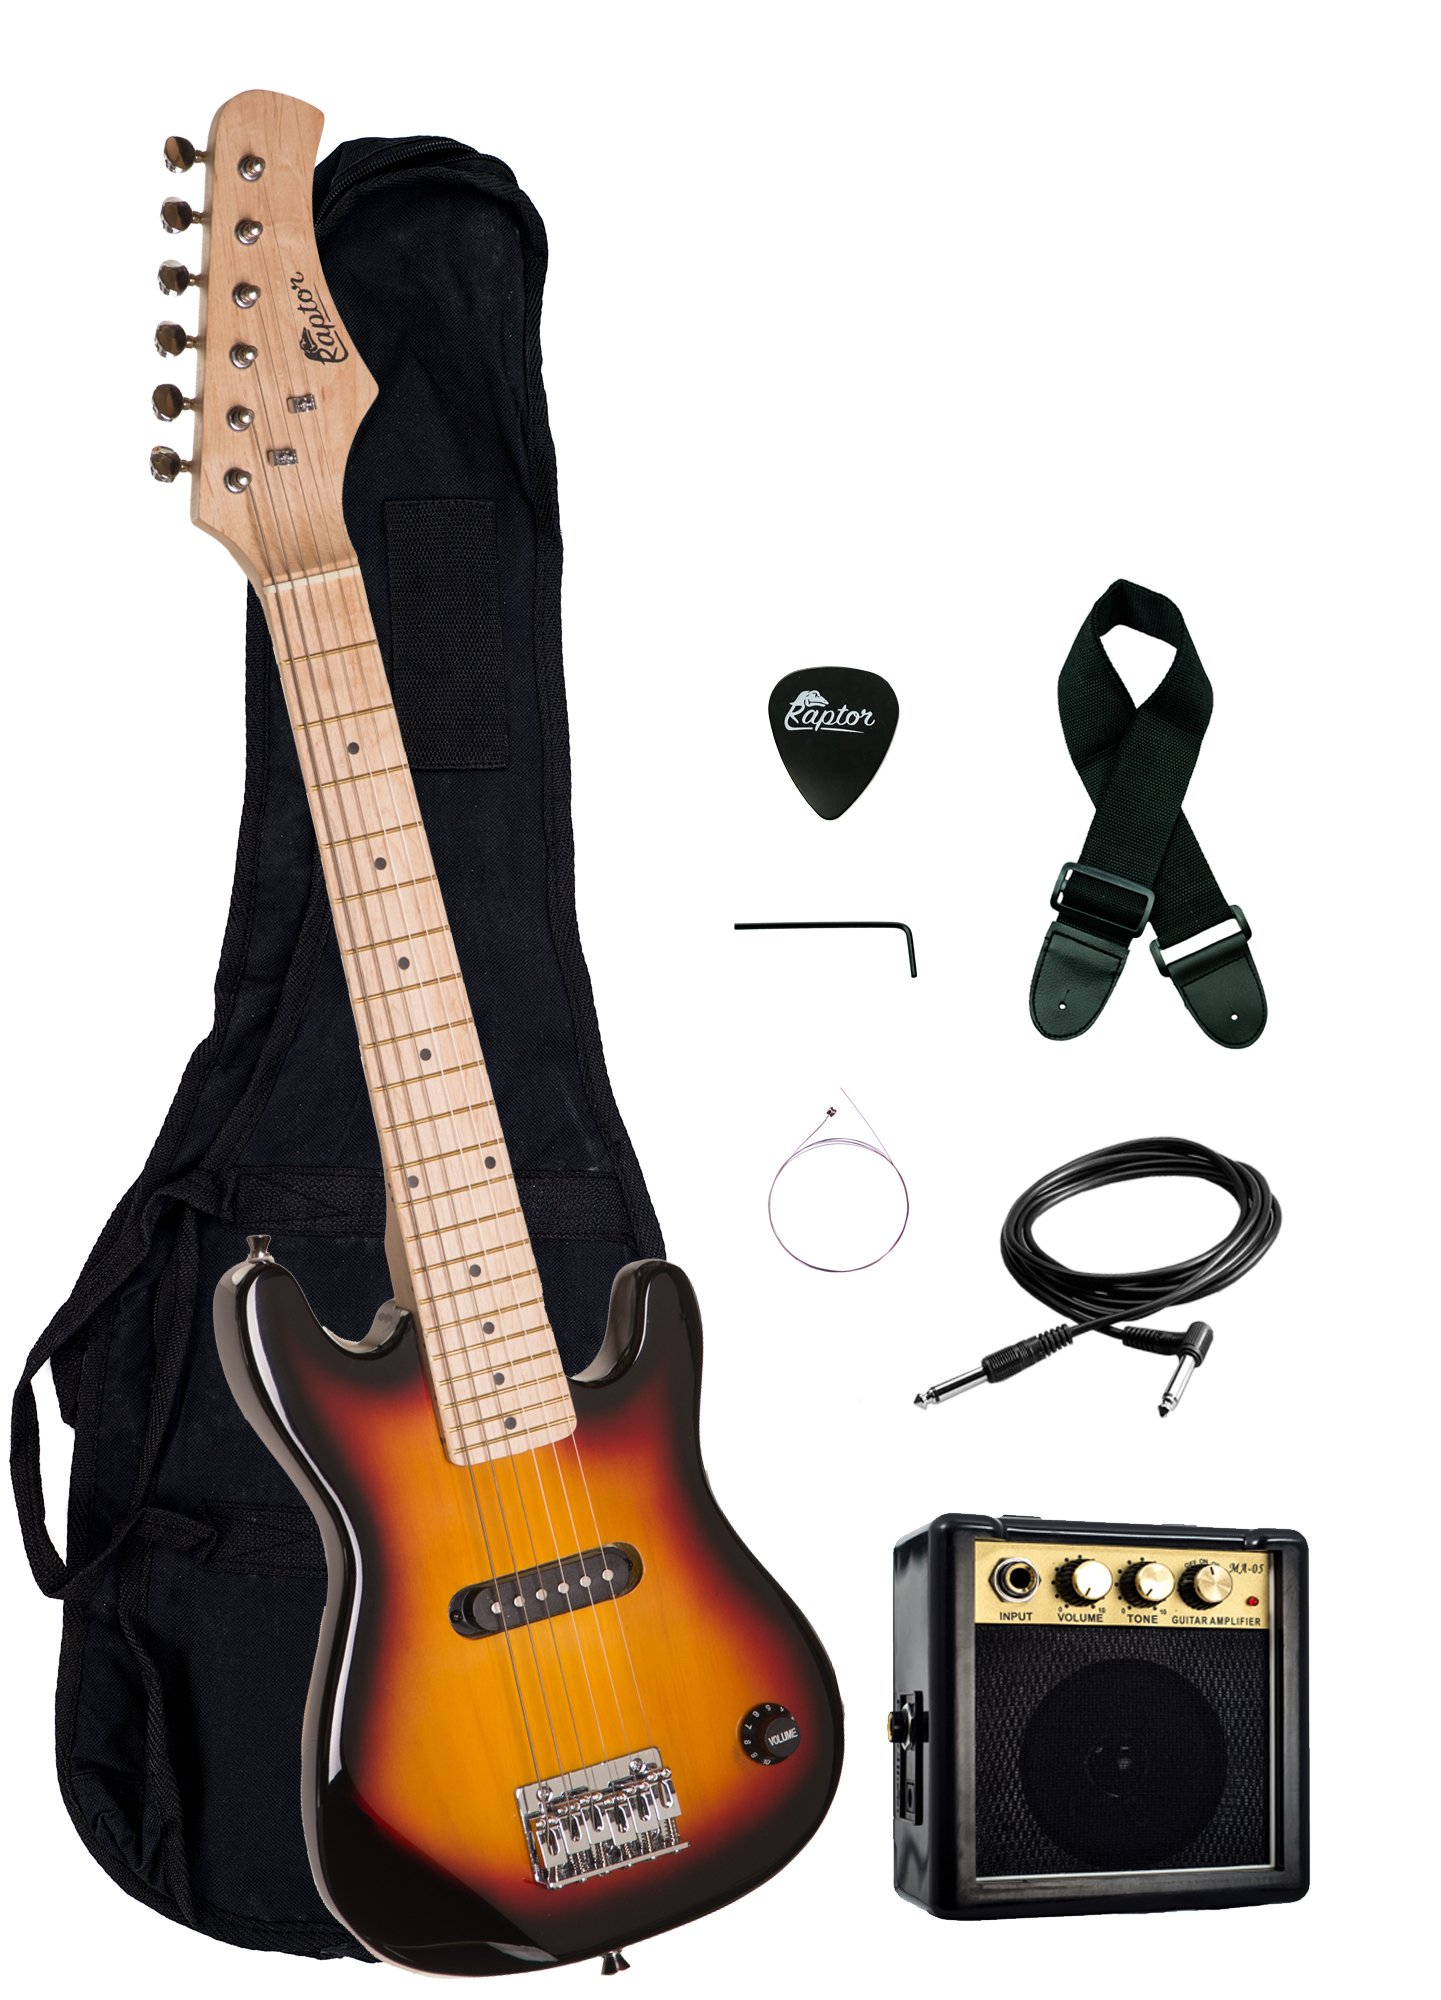 30'' Kids 1/2 Size ULTIMATE Electric Guitar Package with 3W Amp, Gig Bag, Strap, Cable and Exclusive RAPTOR Picks (Tobaccoburst)